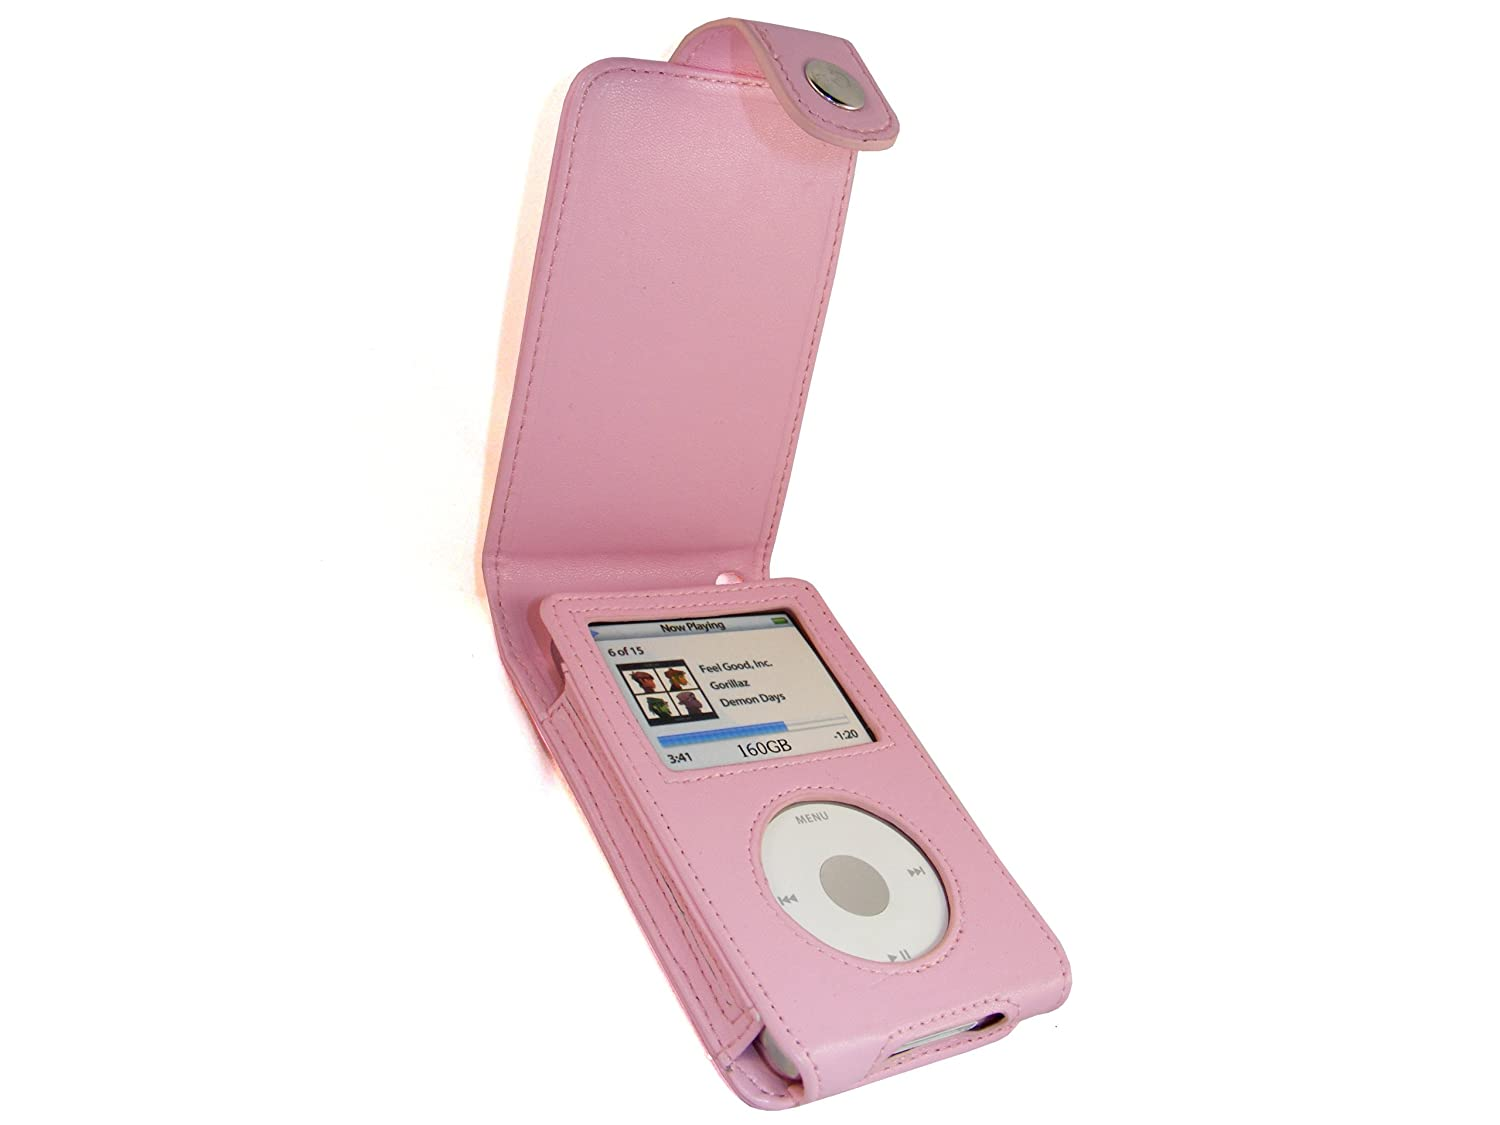 igadgitz Pink Leather Case Cover for Apple iPod Classic 80GB, 120GB & Latest 6th Generation 160gb launched Sept 09 + Belt Clip & Screen Protector